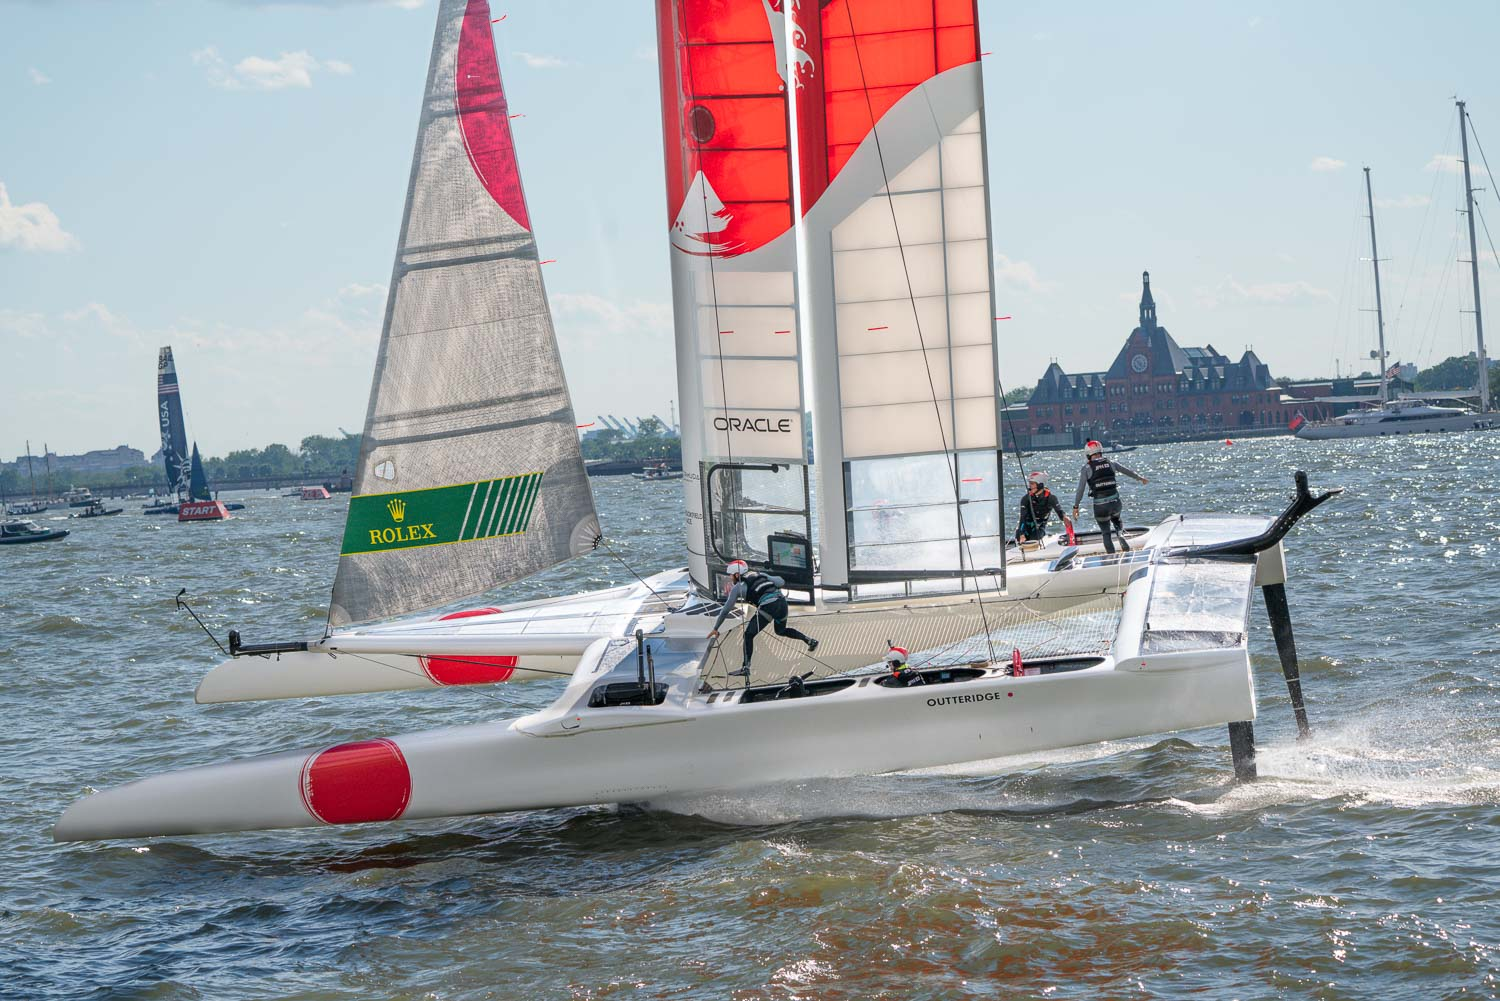 Japan racing in the Sail GP, on the hudson.  Ready to capsize. The crew dance around the deck like ballerinas.jpg